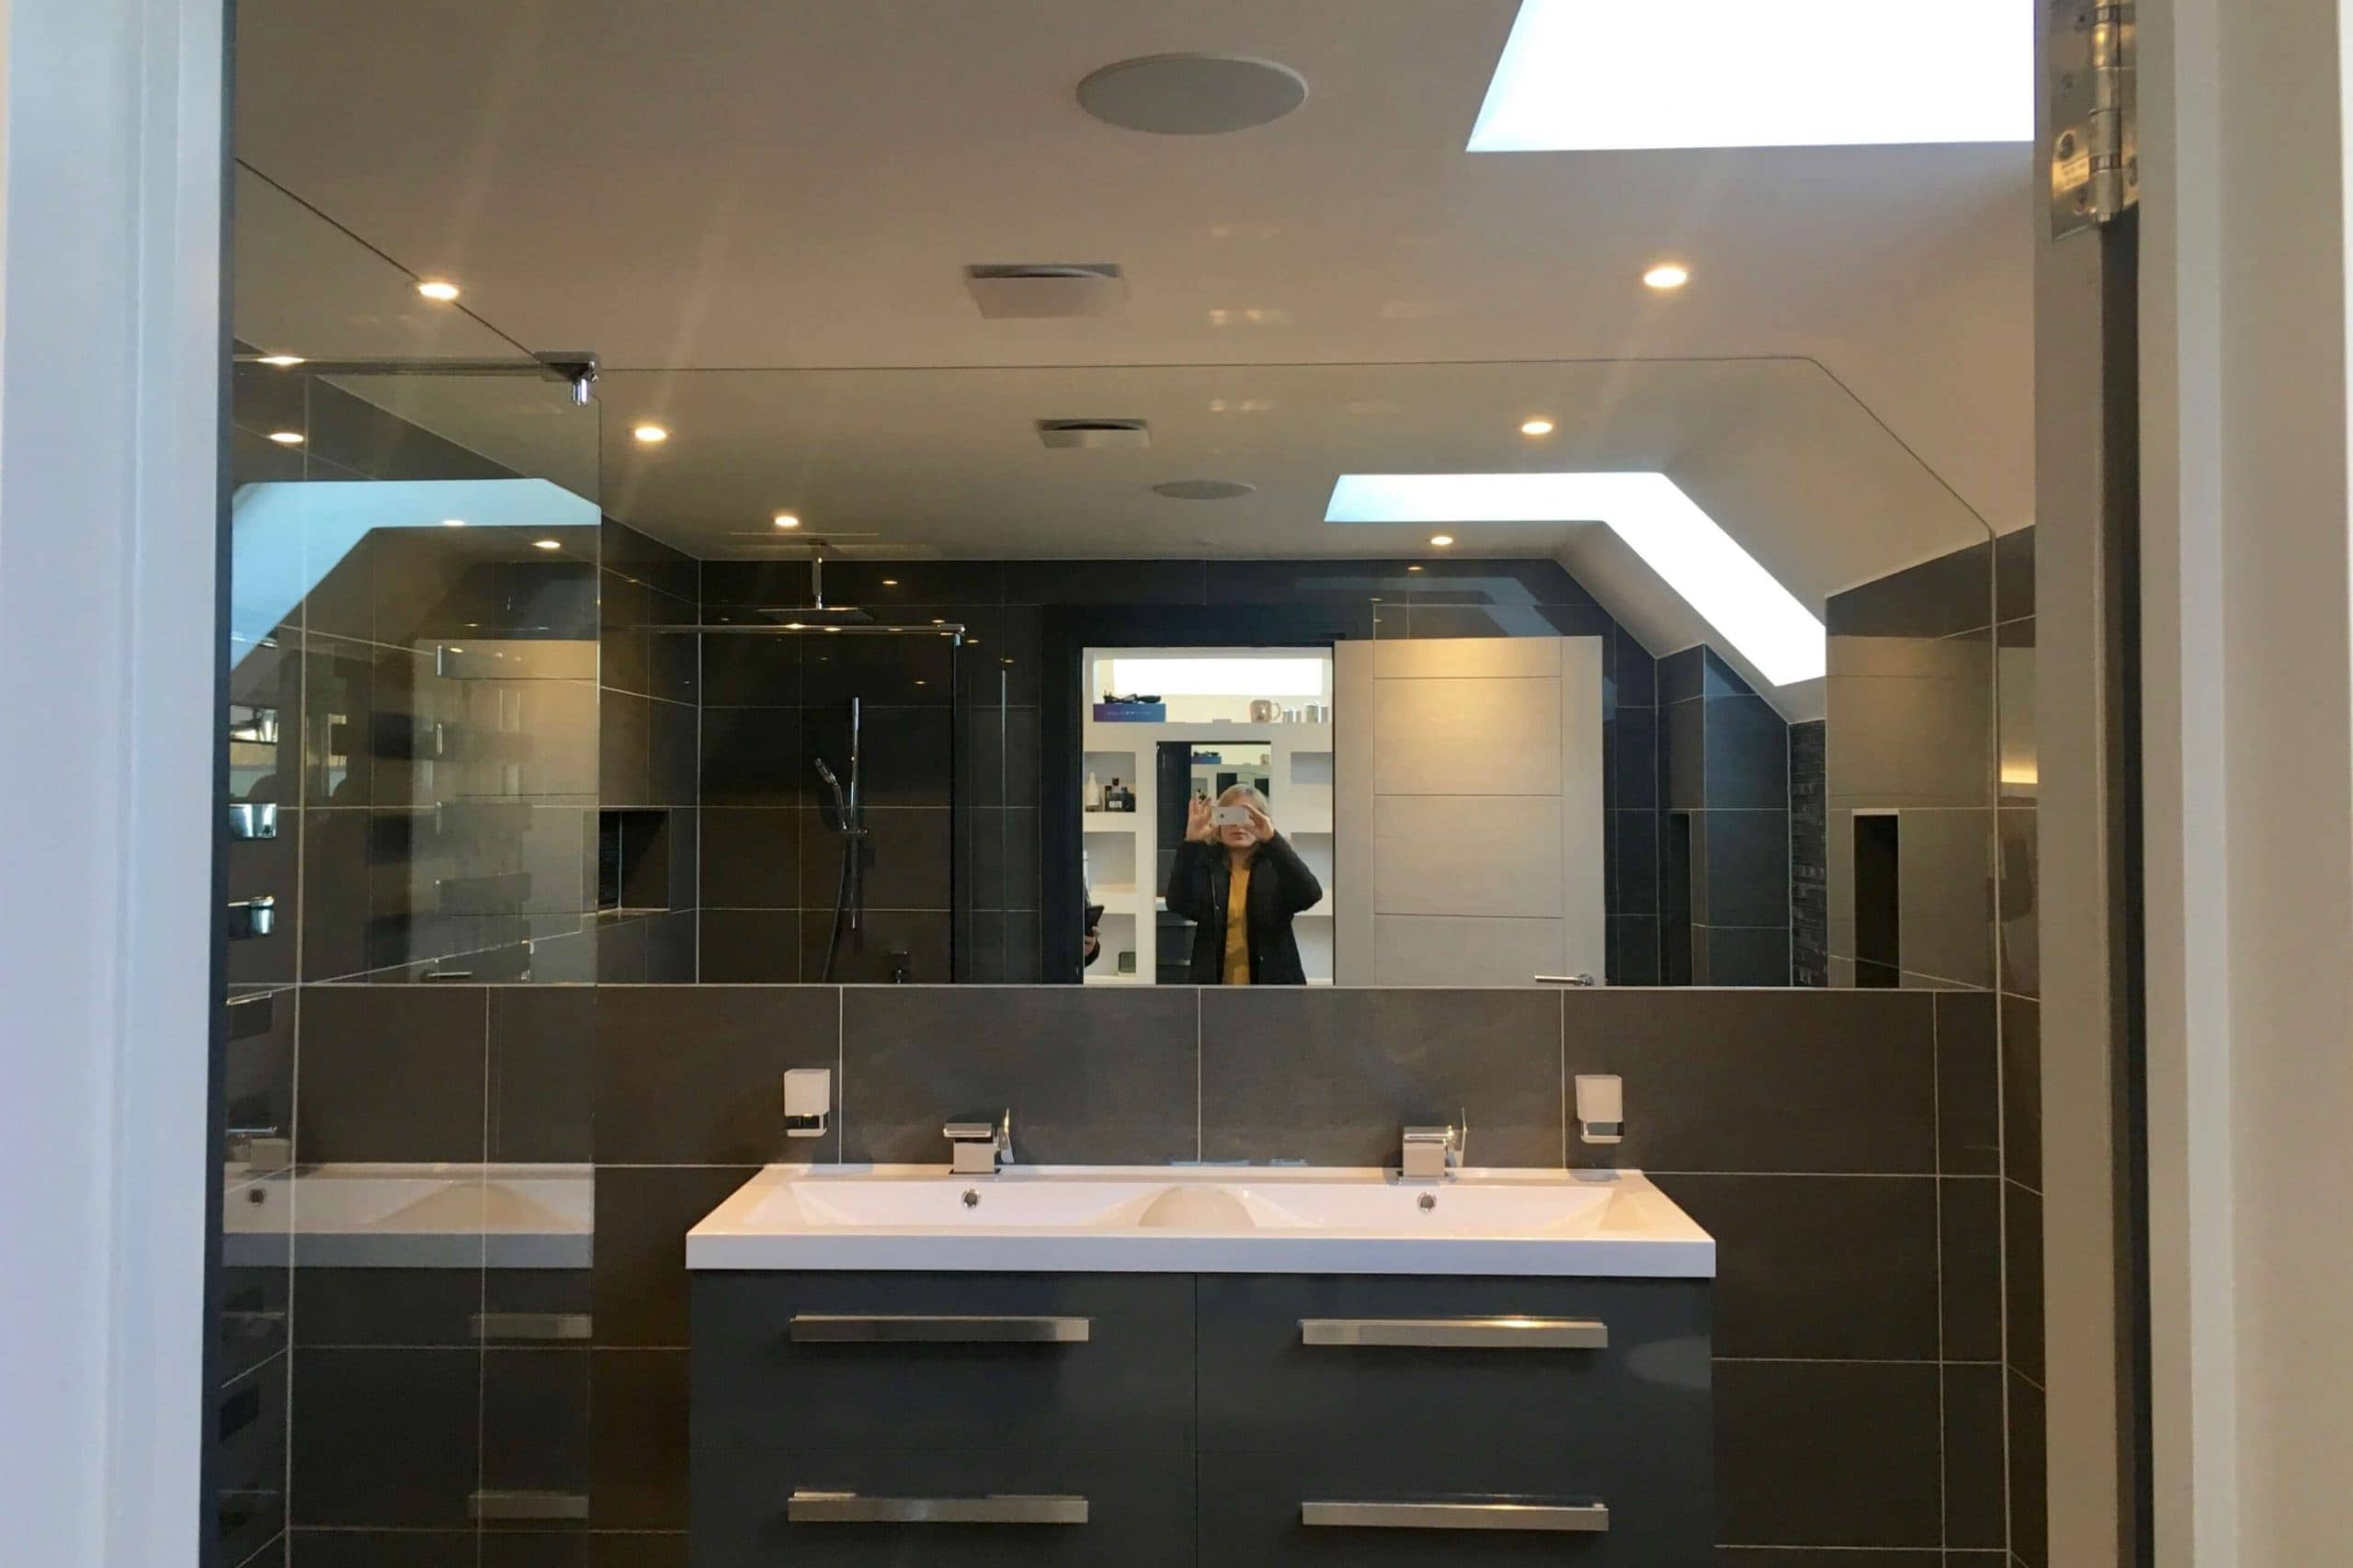 Bathroom in Scandia Hus new build with ceiling squares hidding MVHR system by SubCool FM